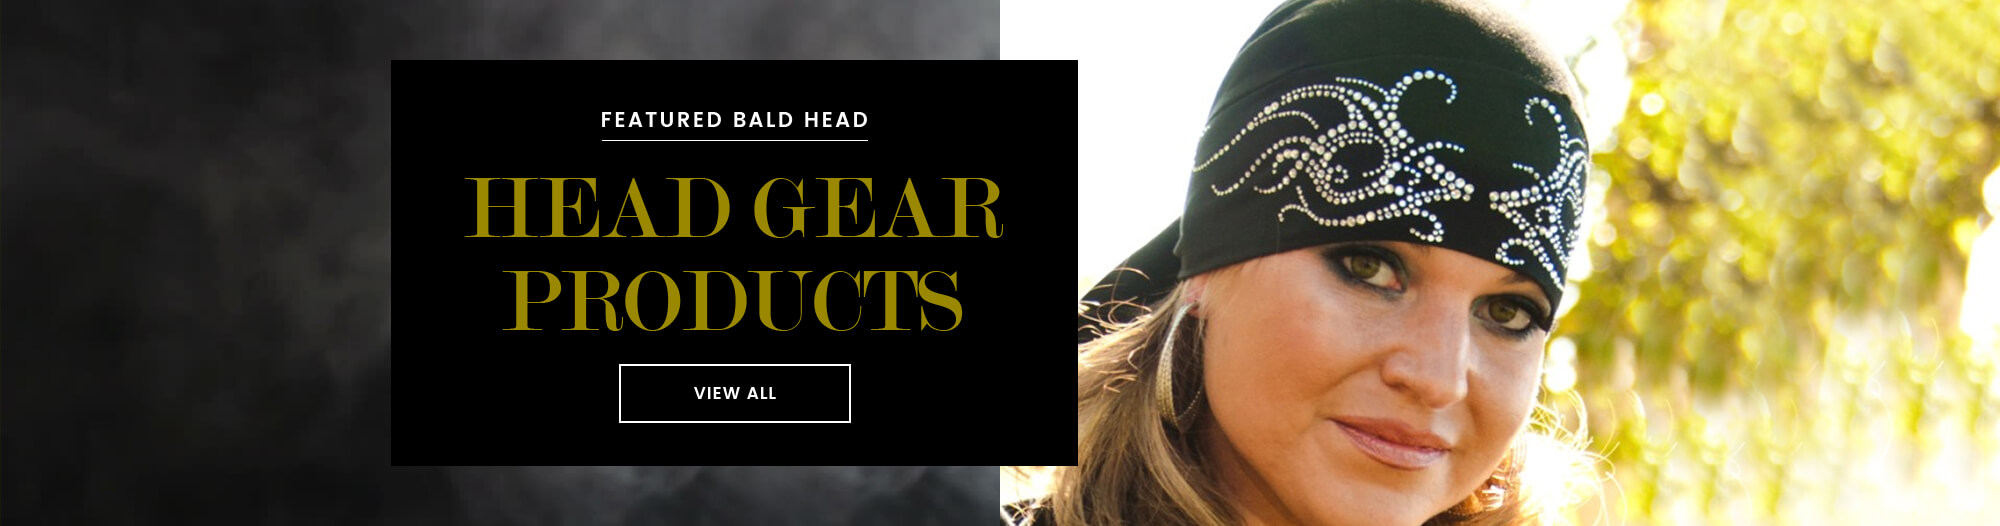 Head Gear Products